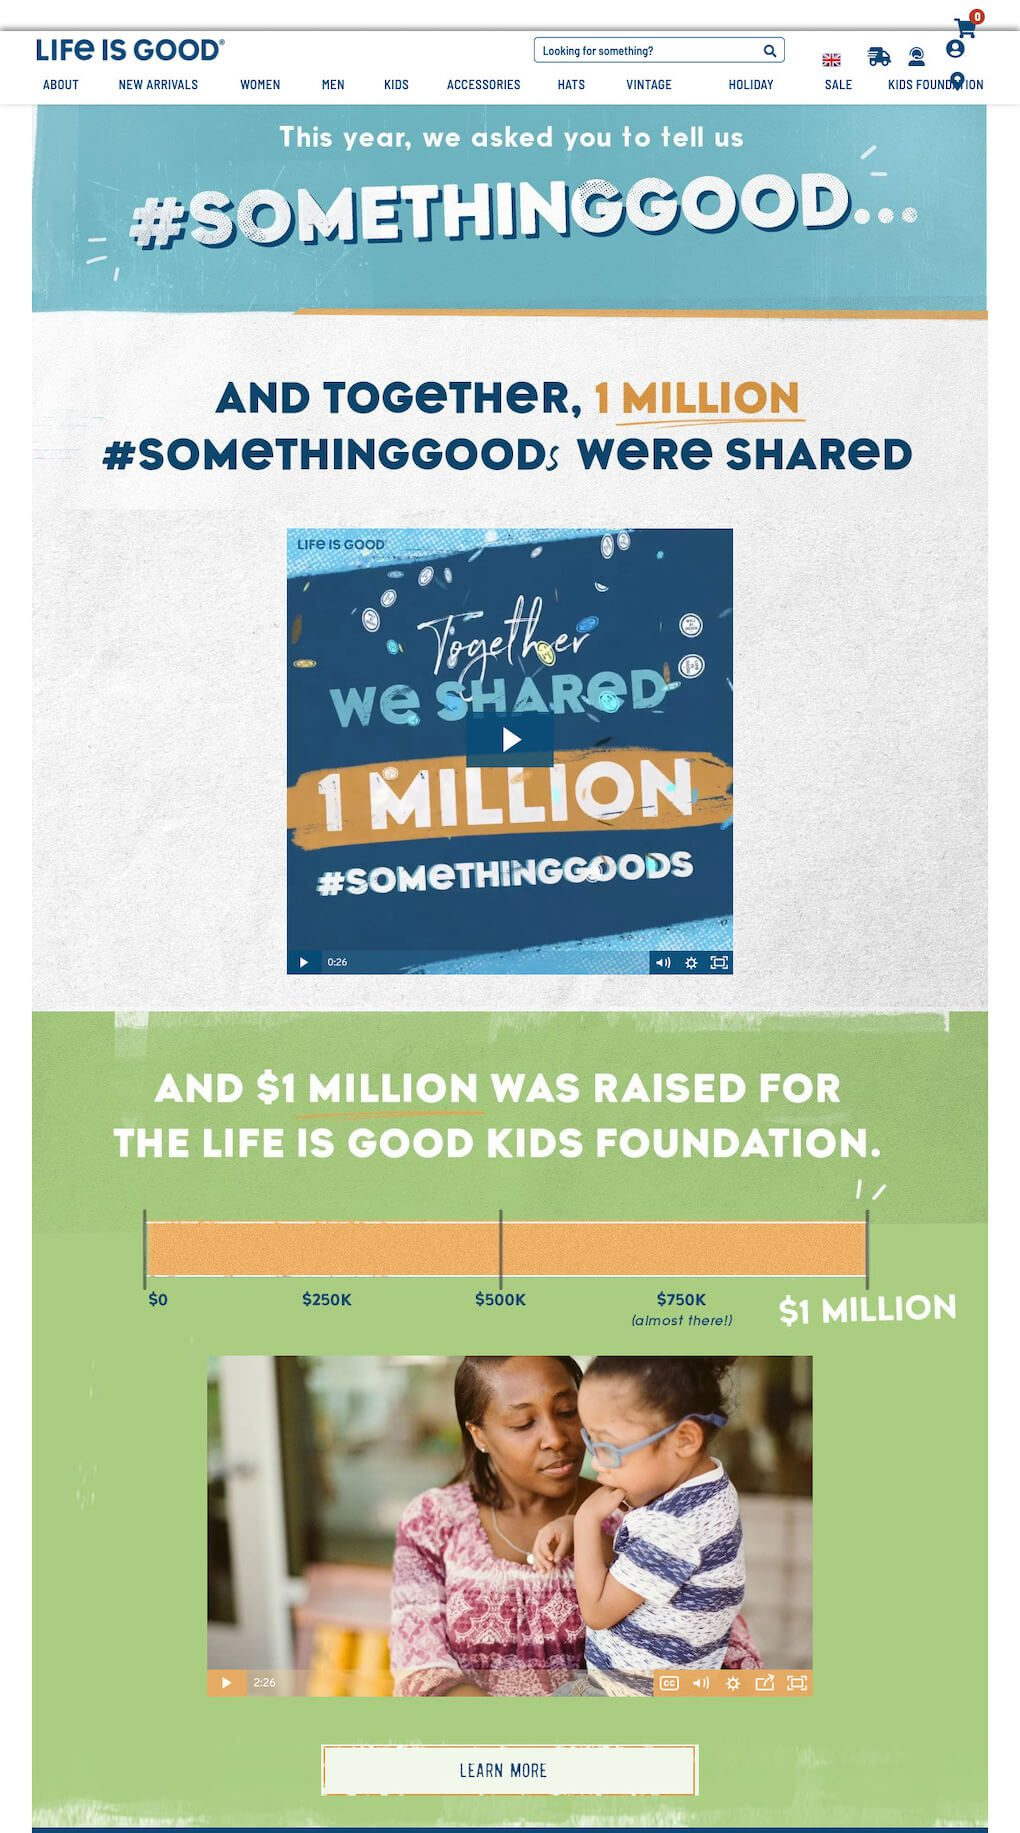 """Screenshot of the #SomethingGood campaign page after the campaign had ended. """"This year, we asked you to tell us #SomethingGood. And together, 1 million #SomethingGood were shared. And $1 million was raised for the Life is Good Kids Foundation."""" The page also includes a recap video, a completed donations counter and a learn more button."""